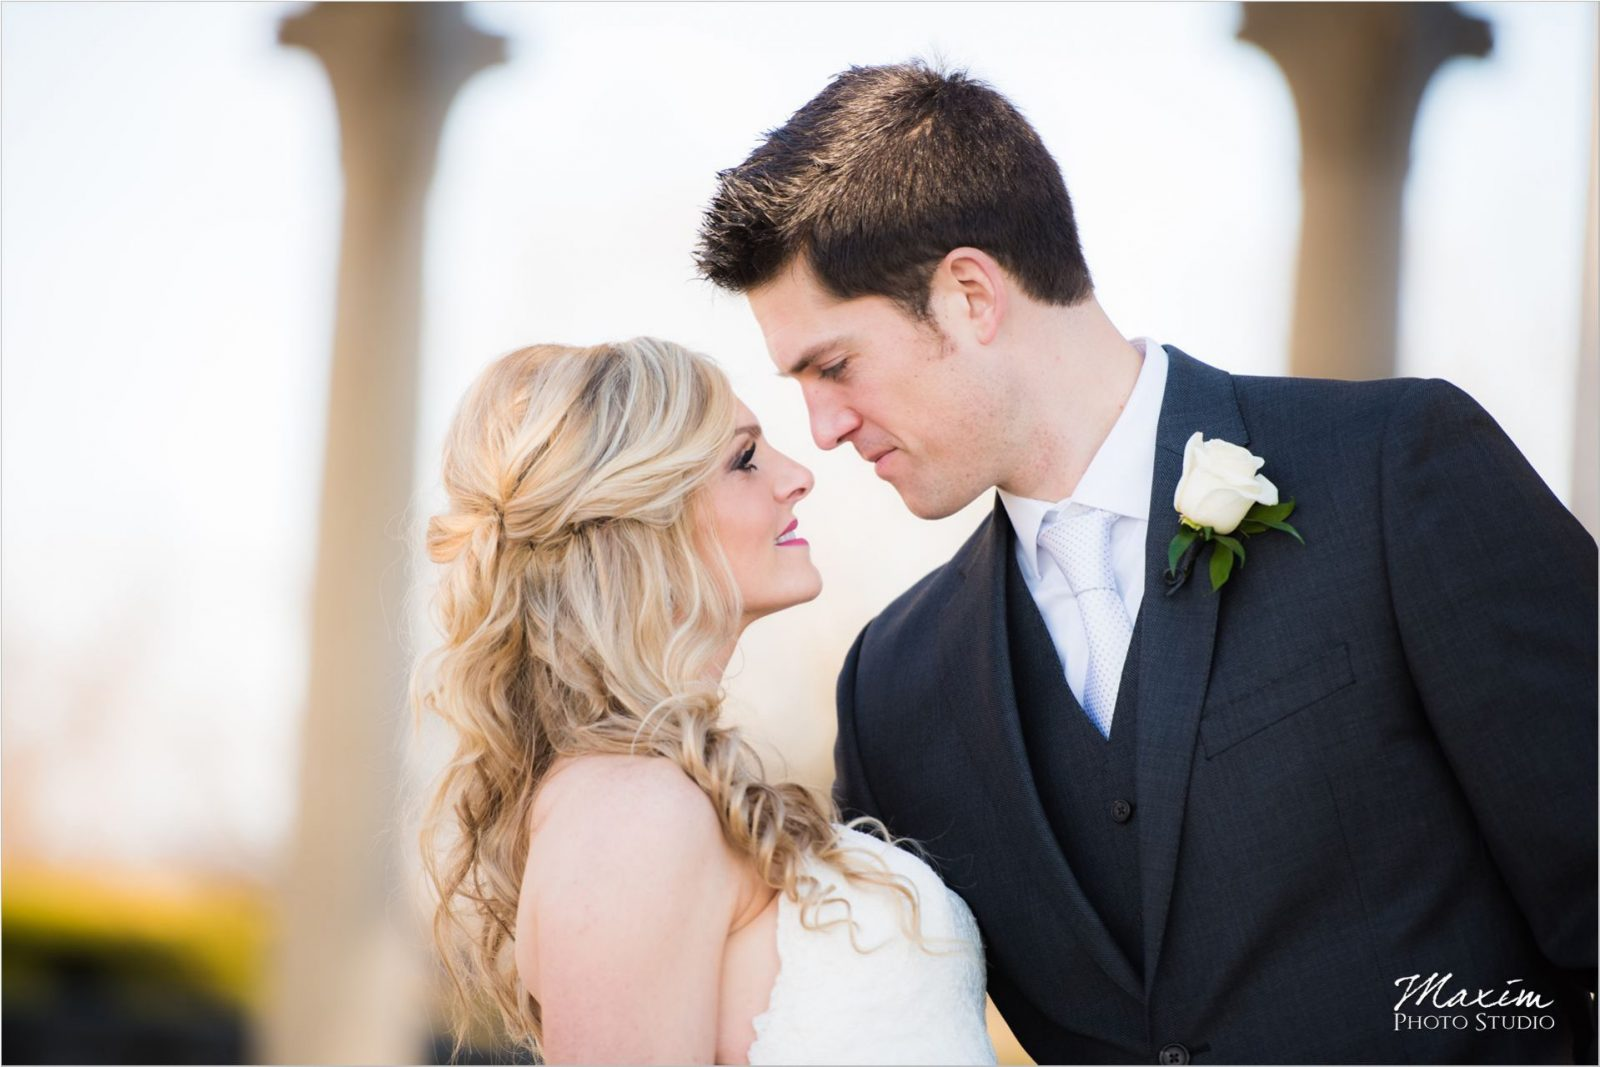 Ault Park Winter Wedding Bride Groom